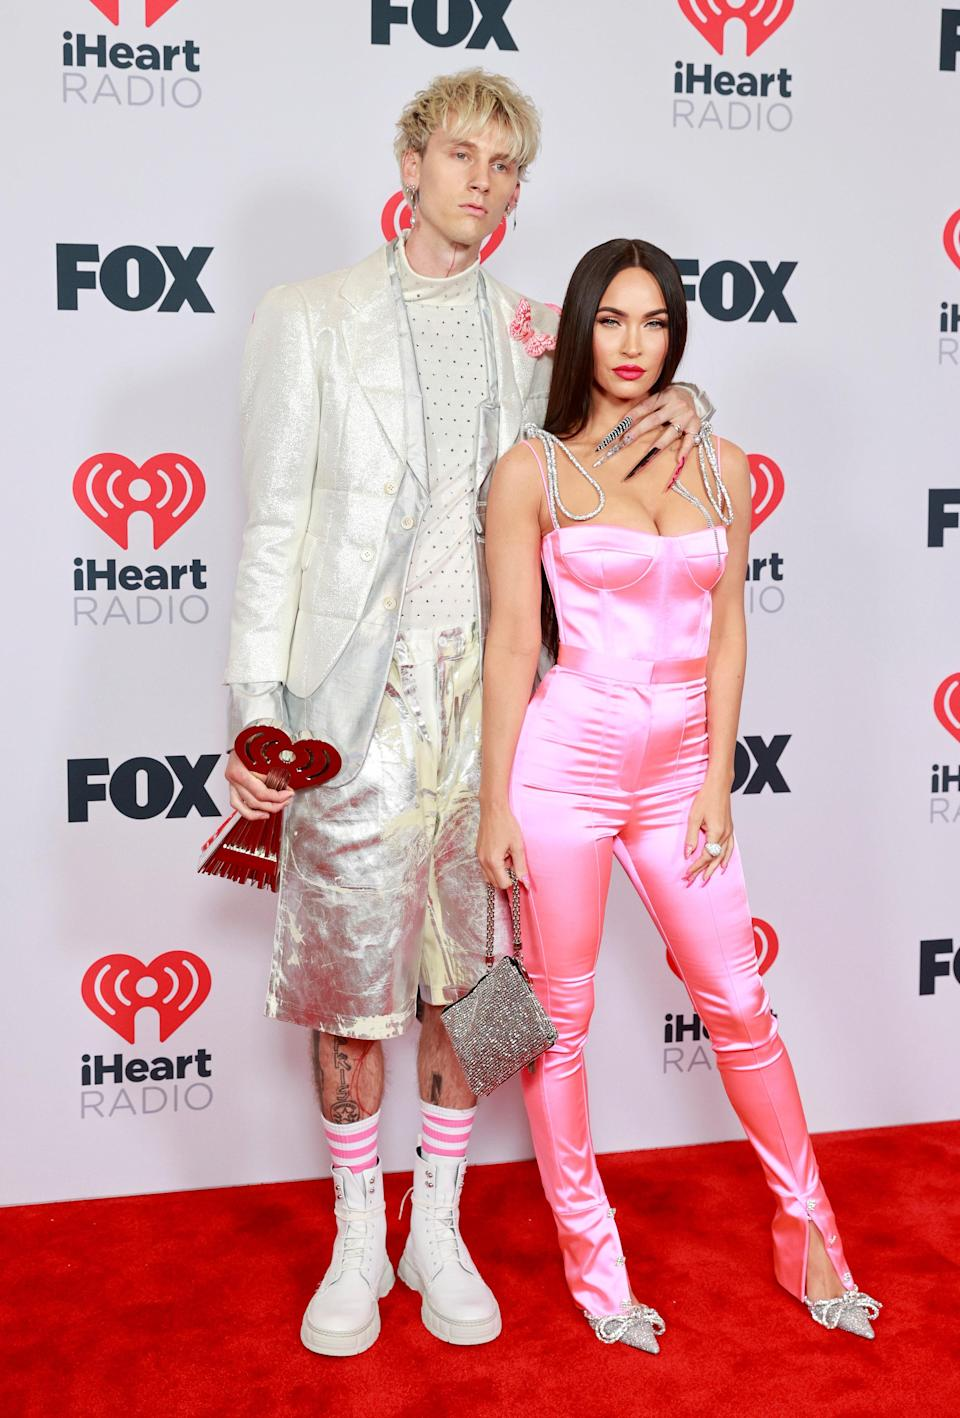 Couple of the moment Megan Fox and Machine Gun Kelly know how to serve an iconic photo moment and this was no exception. Styled by Maeve Reilly, Megan arrived in a barbie pink MACH & MACH jumpsuit. She looked breathtaking in a fitted silky ensemble that matched MGK's pink and white tube socks. He was styled by Adam Ballheim and wore an icy Comme des Garçons look – complete with an extra-long manicure.